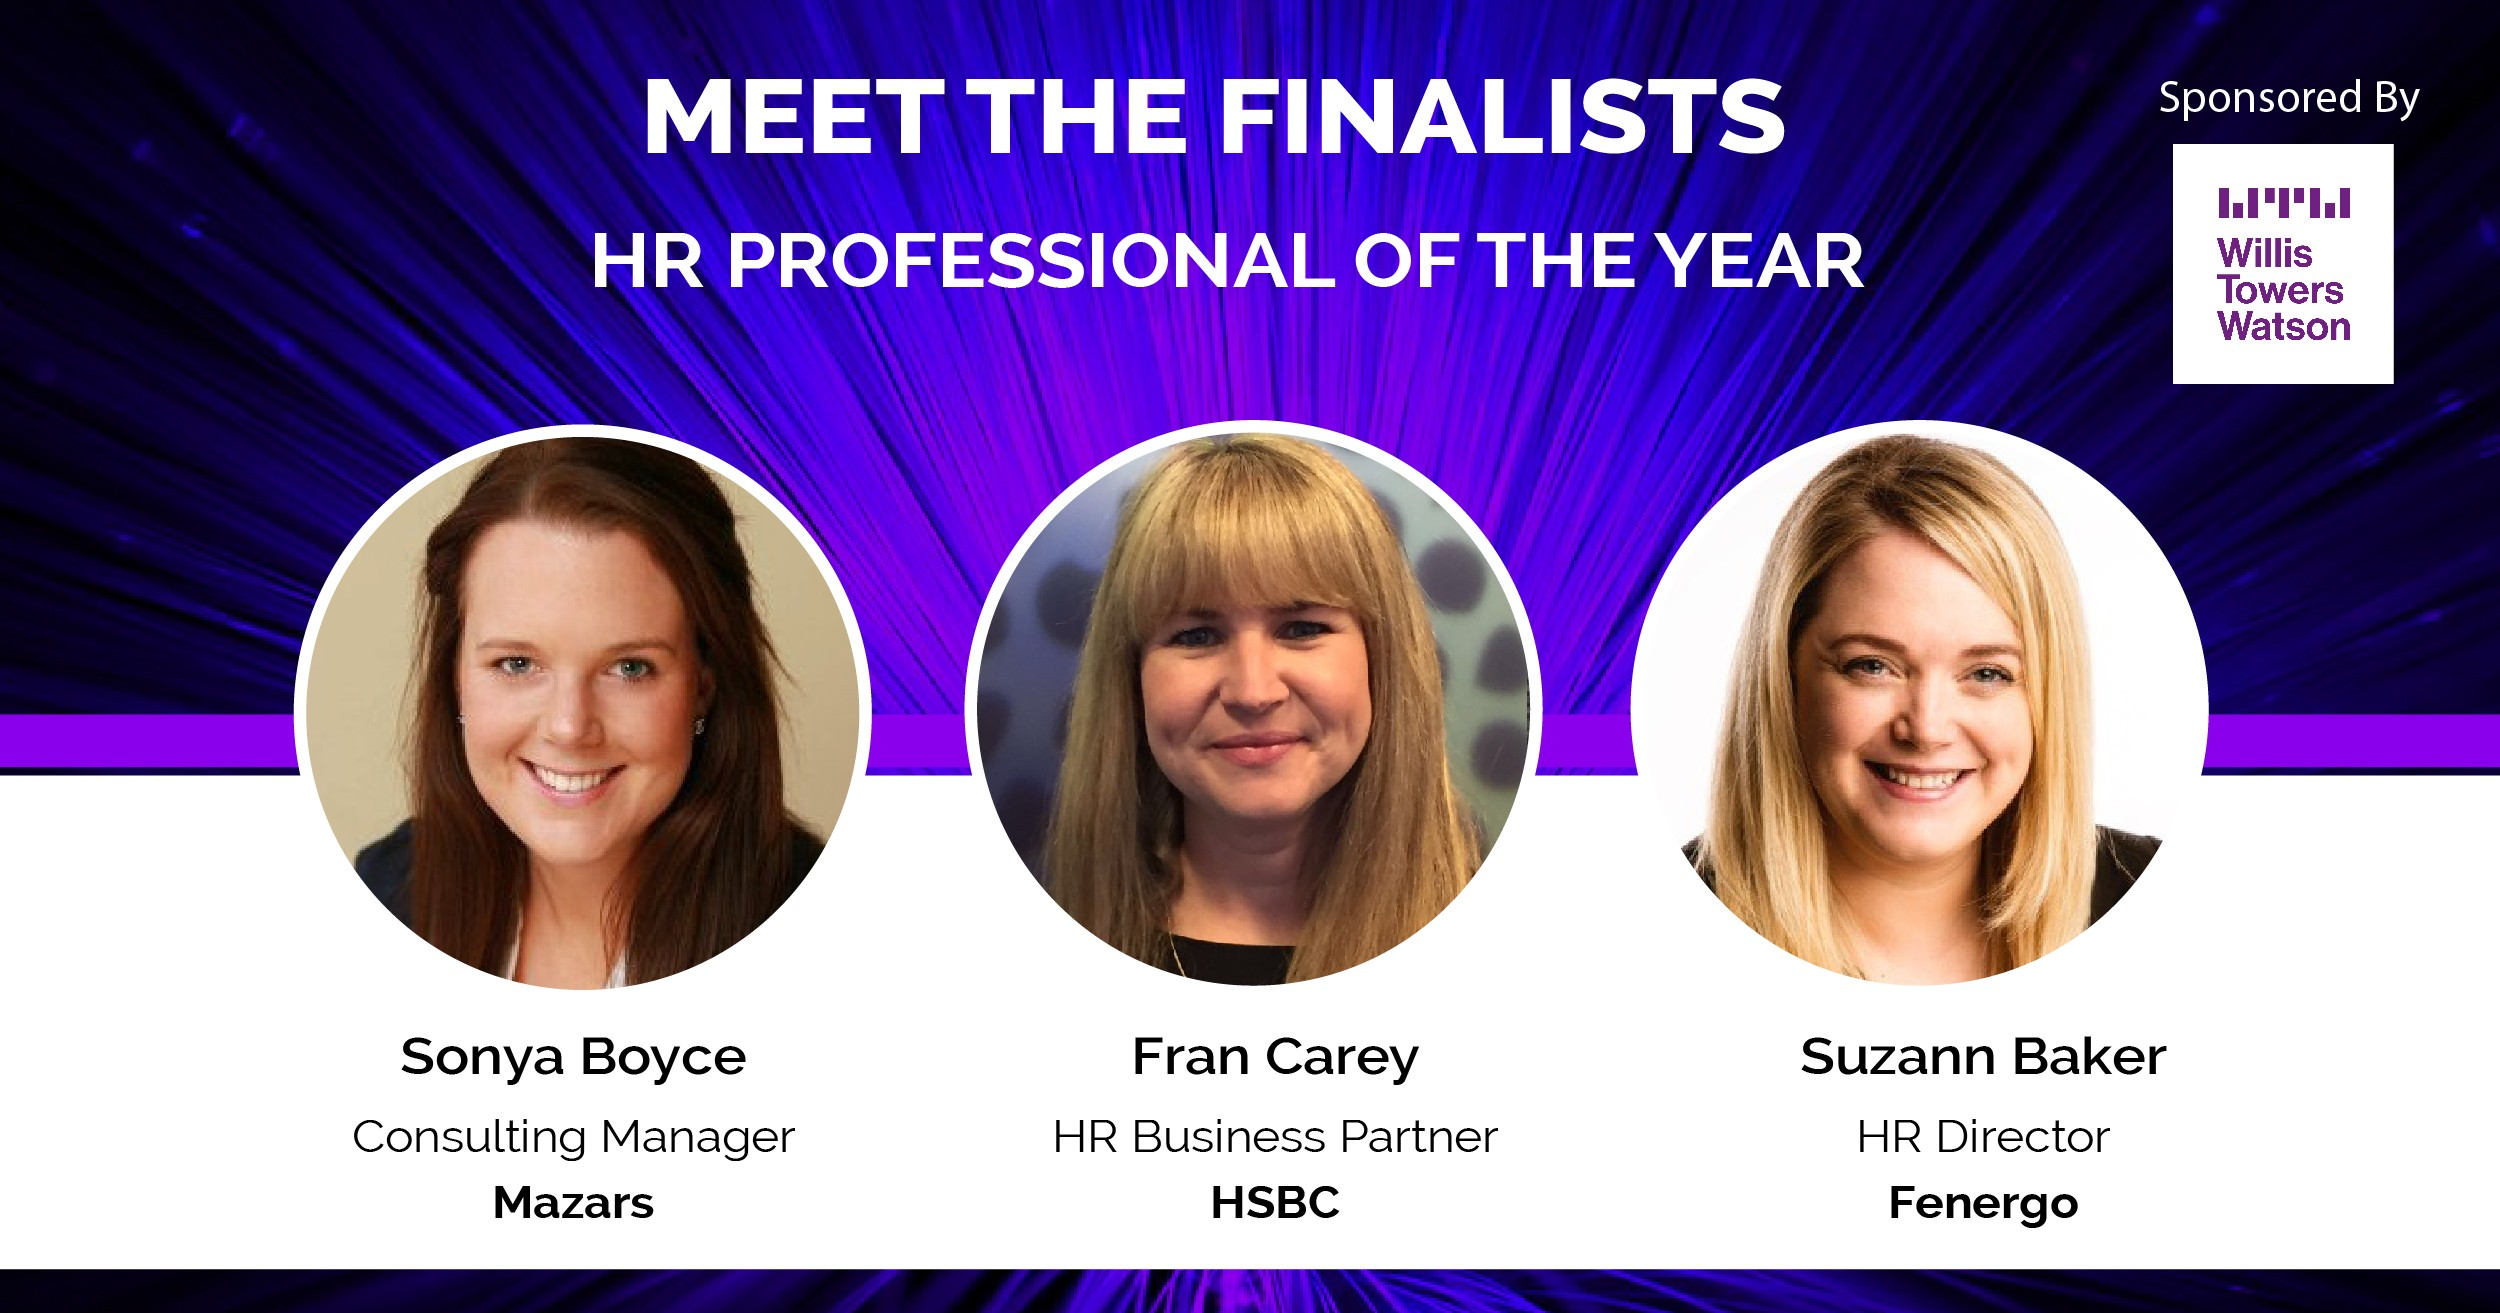 MEet the Finalists HR